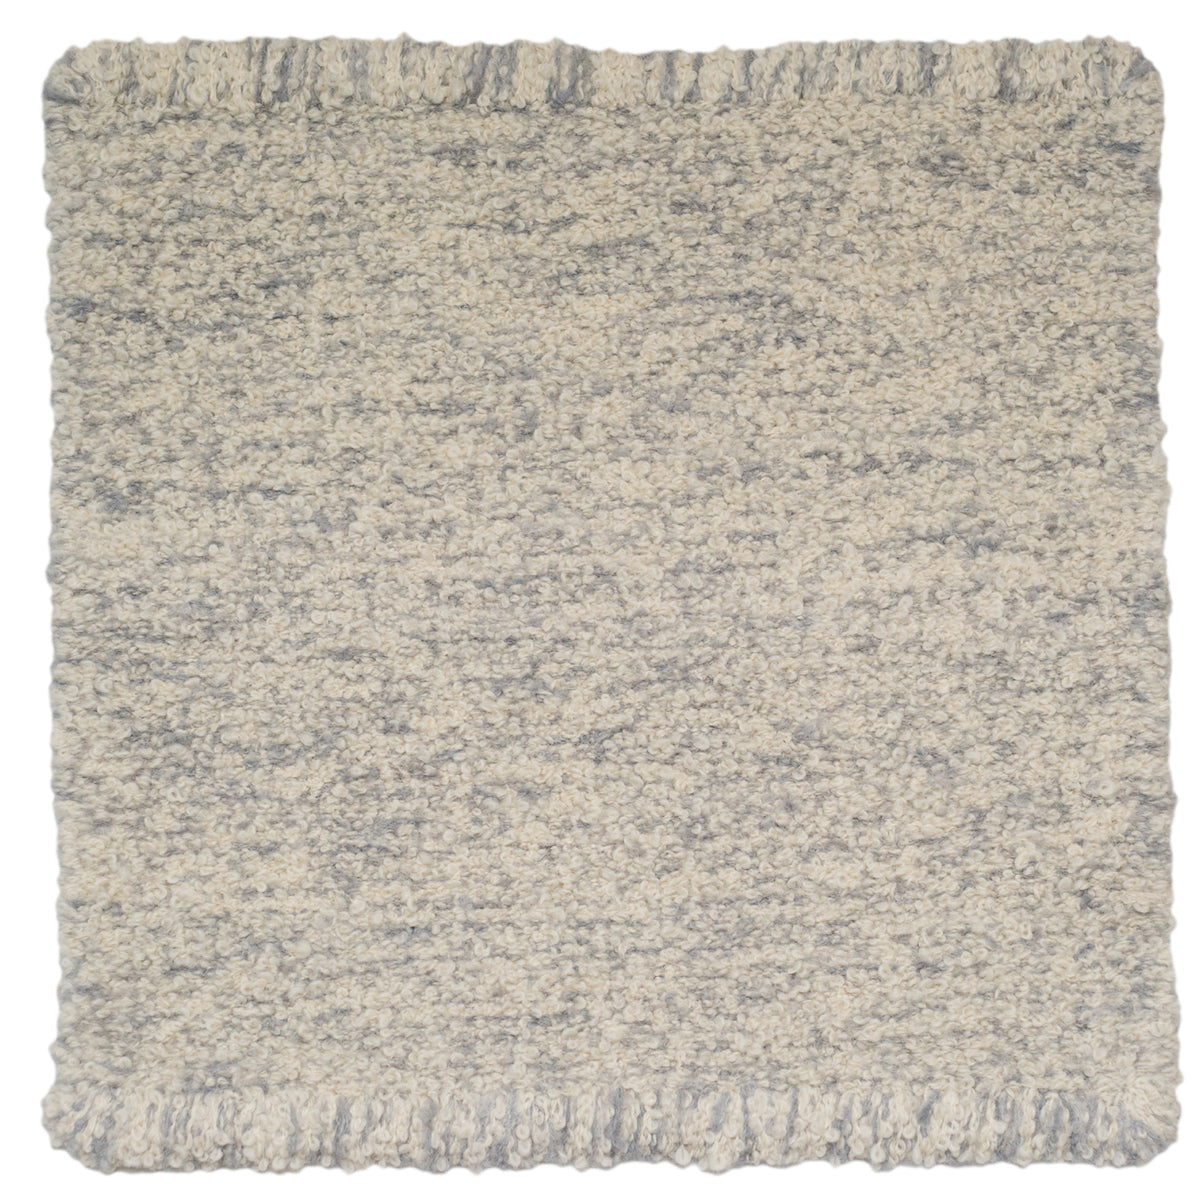 Hand Painted Pebble Bouclé - In Stock Rug